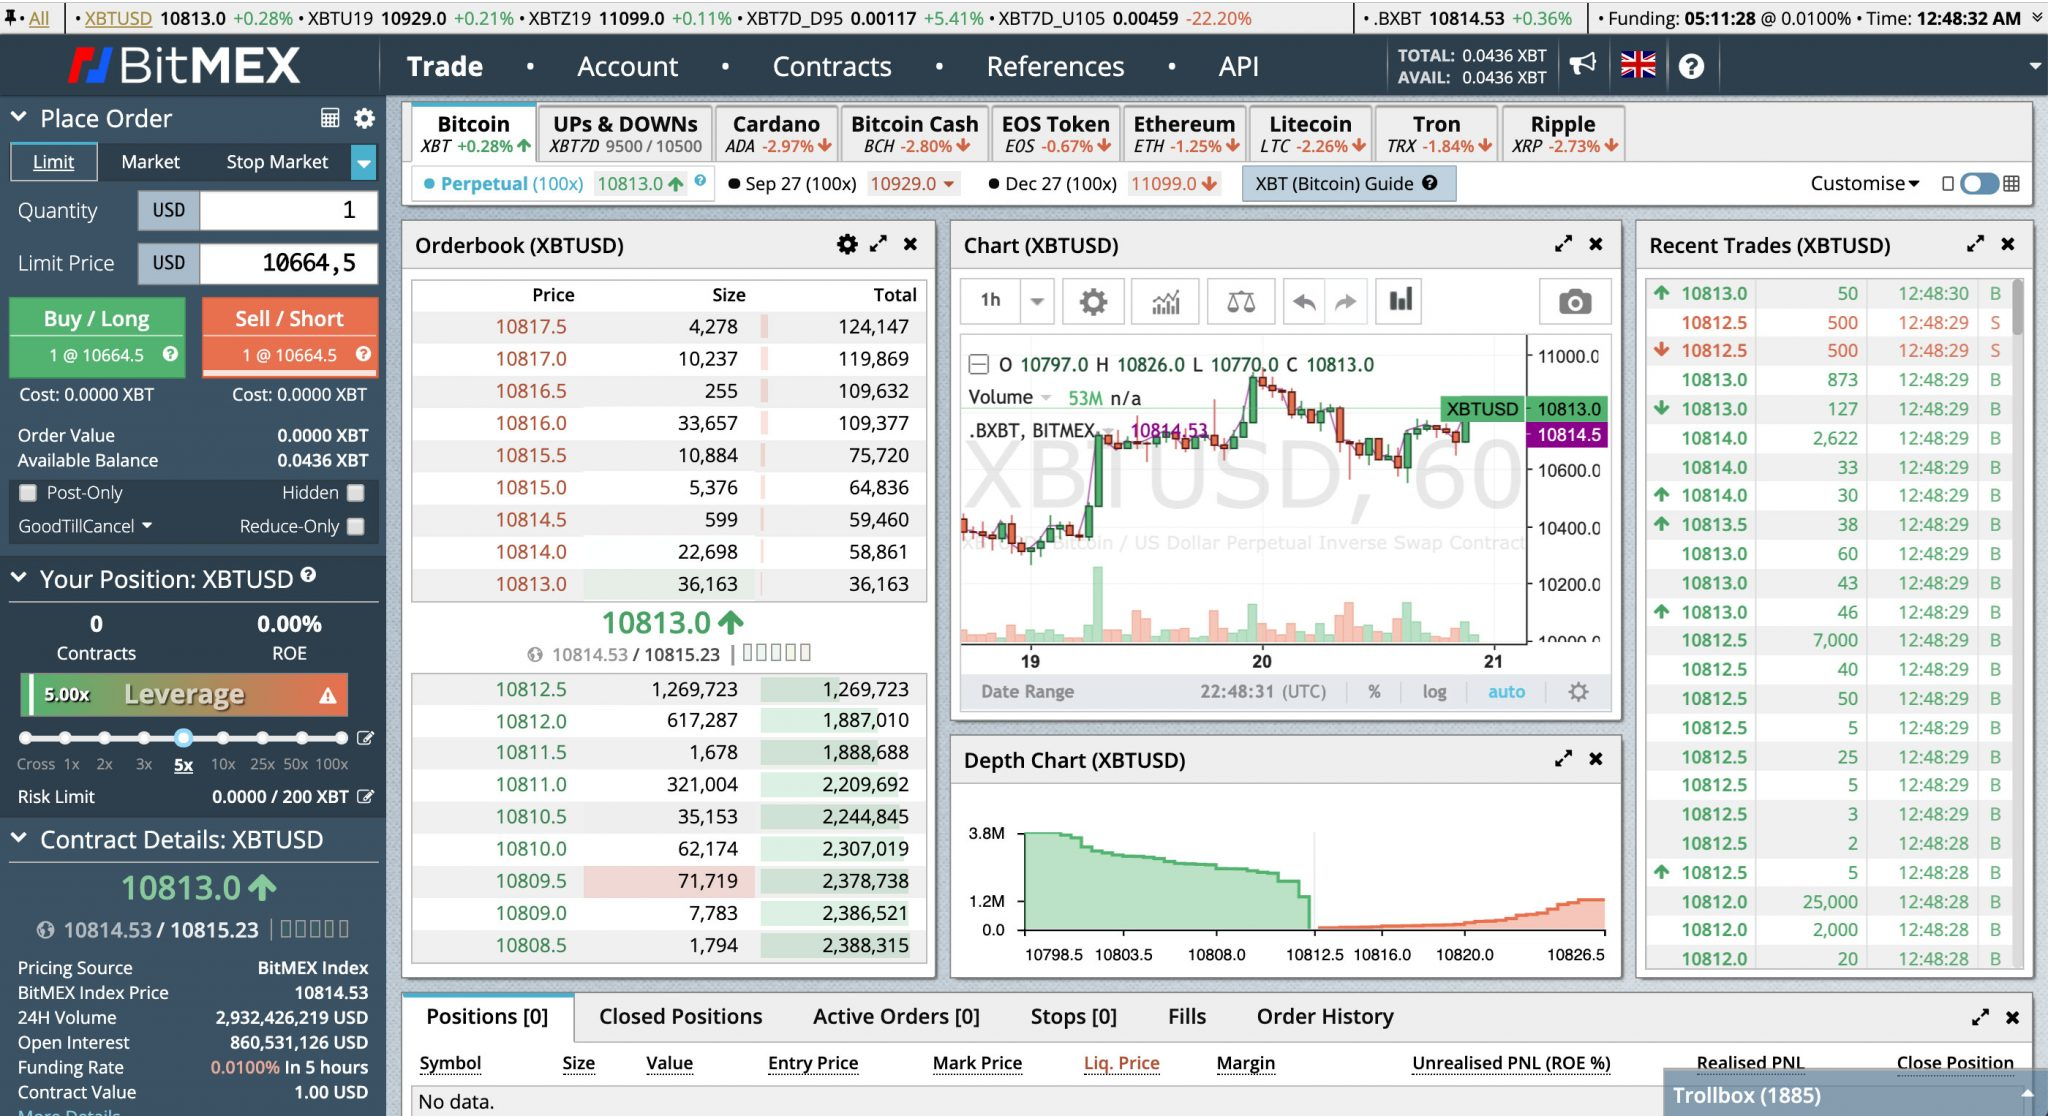 Interface for the crypto exchange Bitmex.